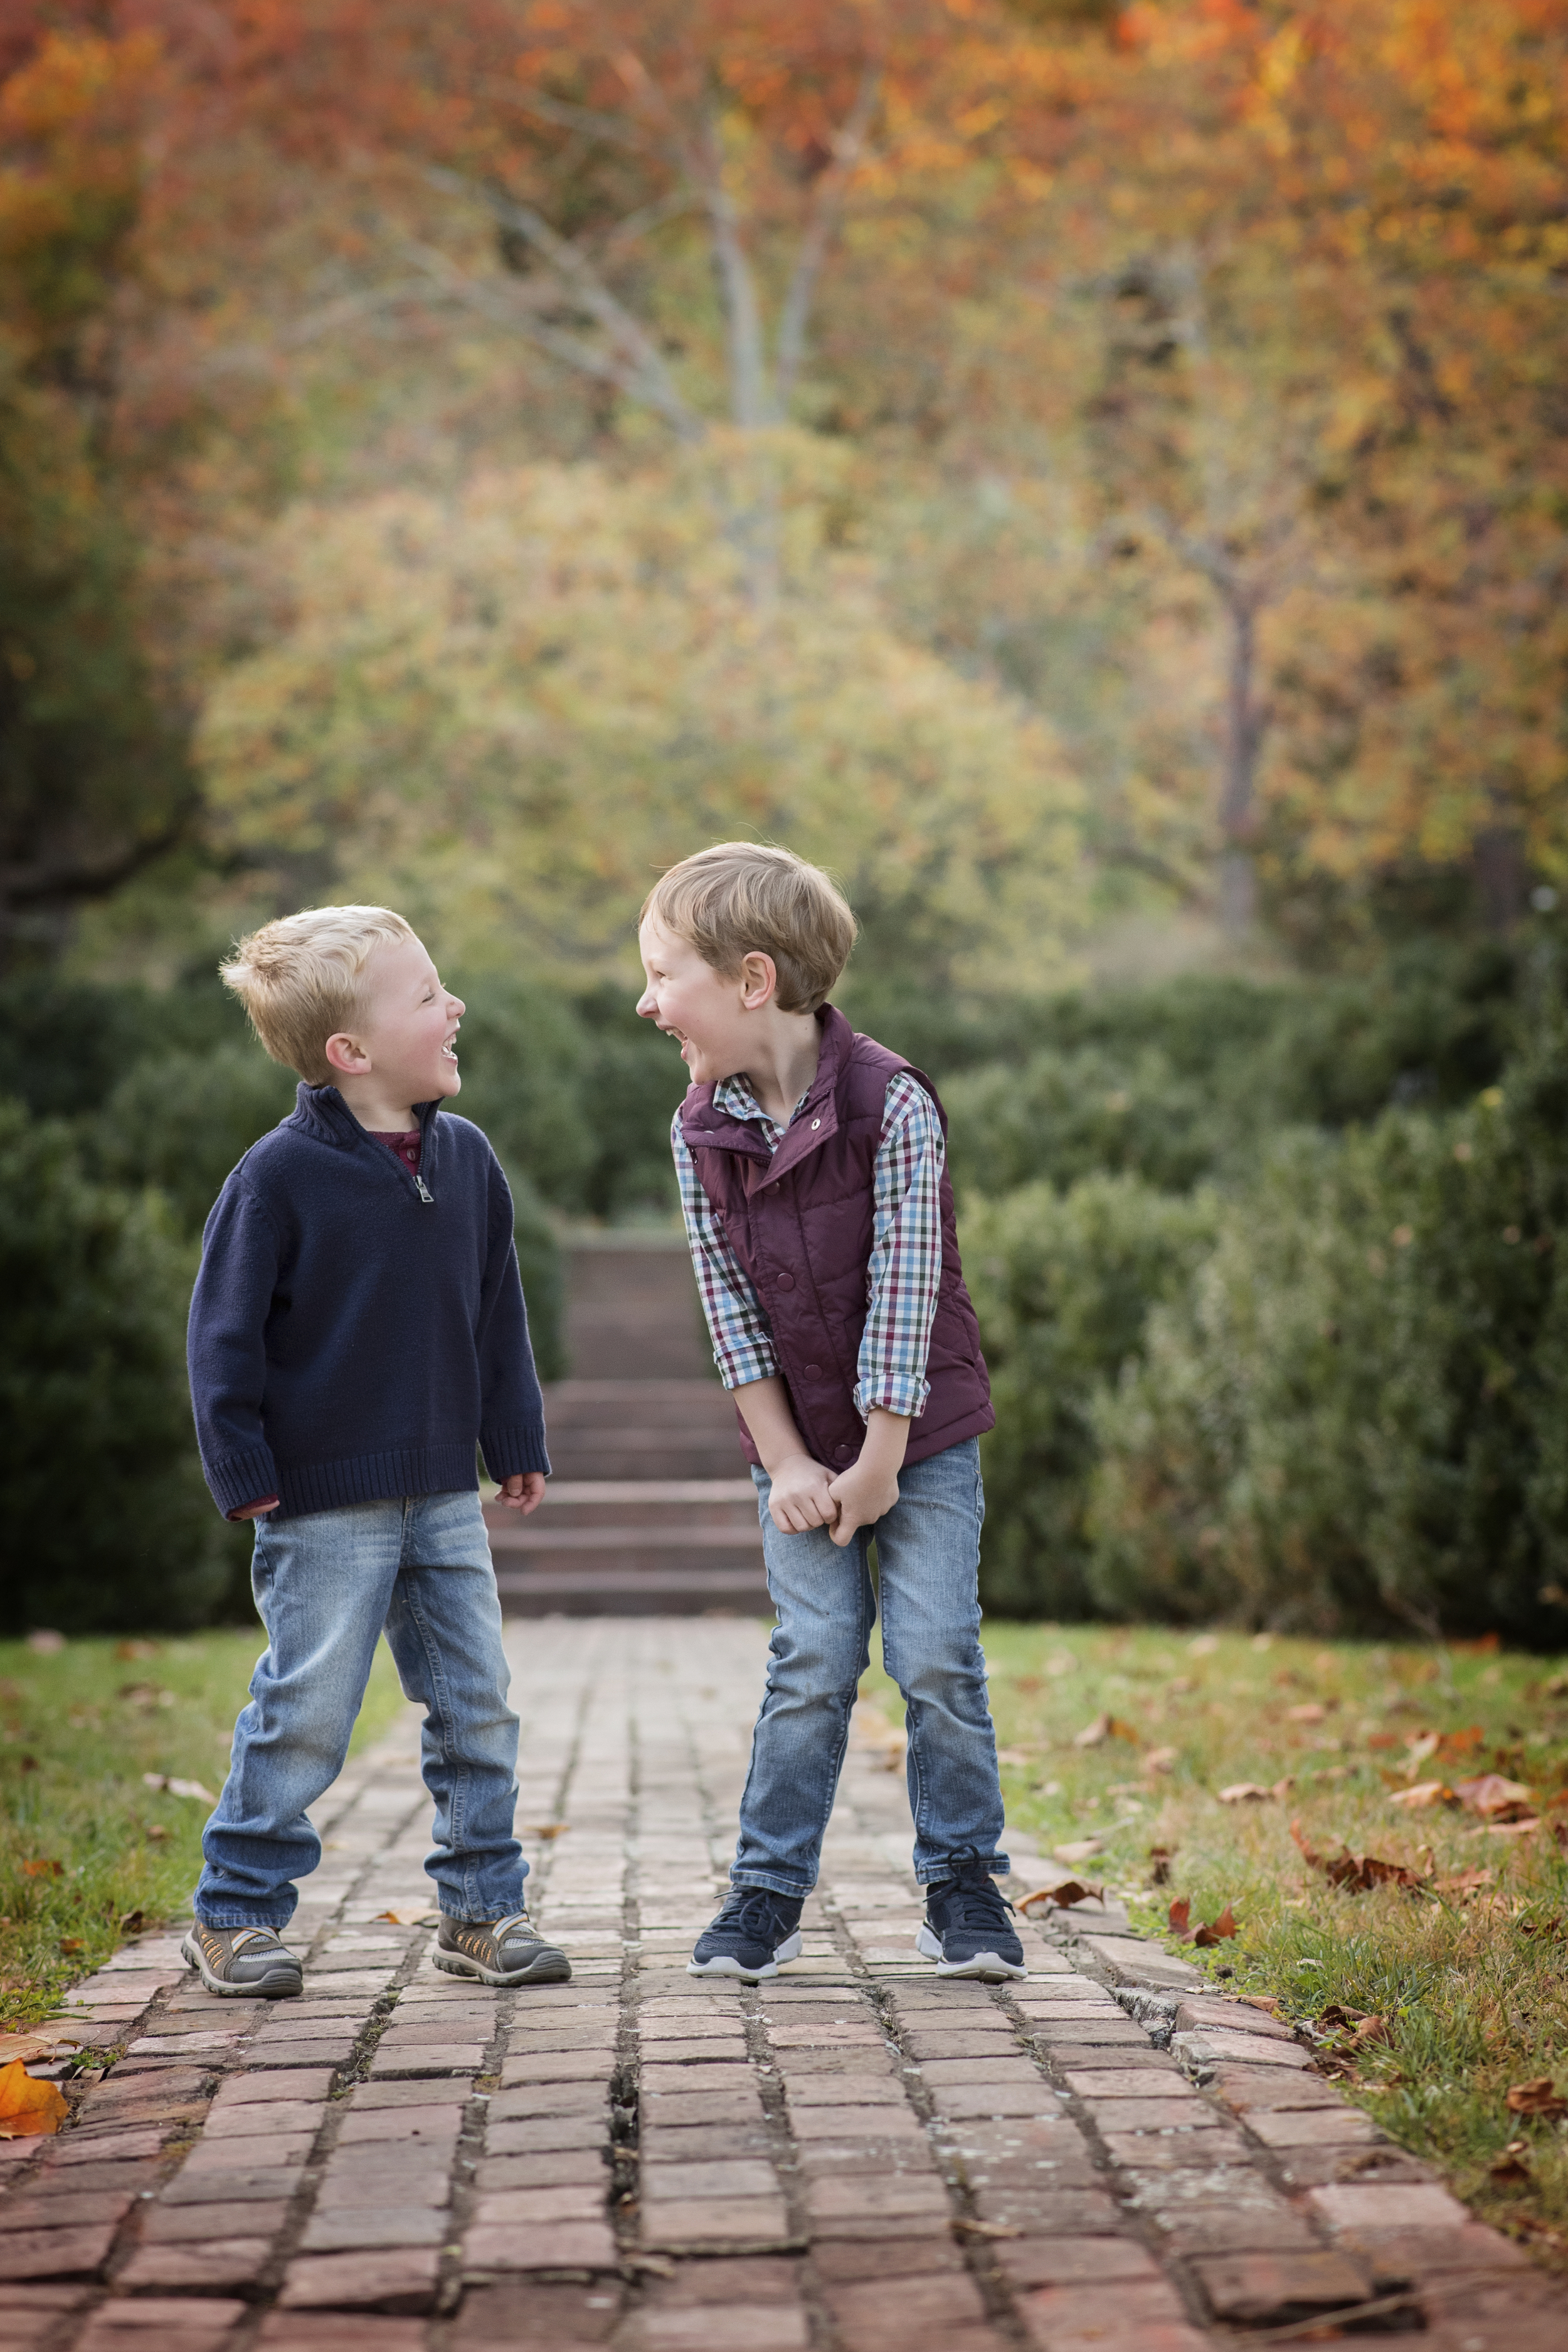 childhood best friends laughing together on brick sidewalk kate montaner photography chlidrens lifestyle photographer